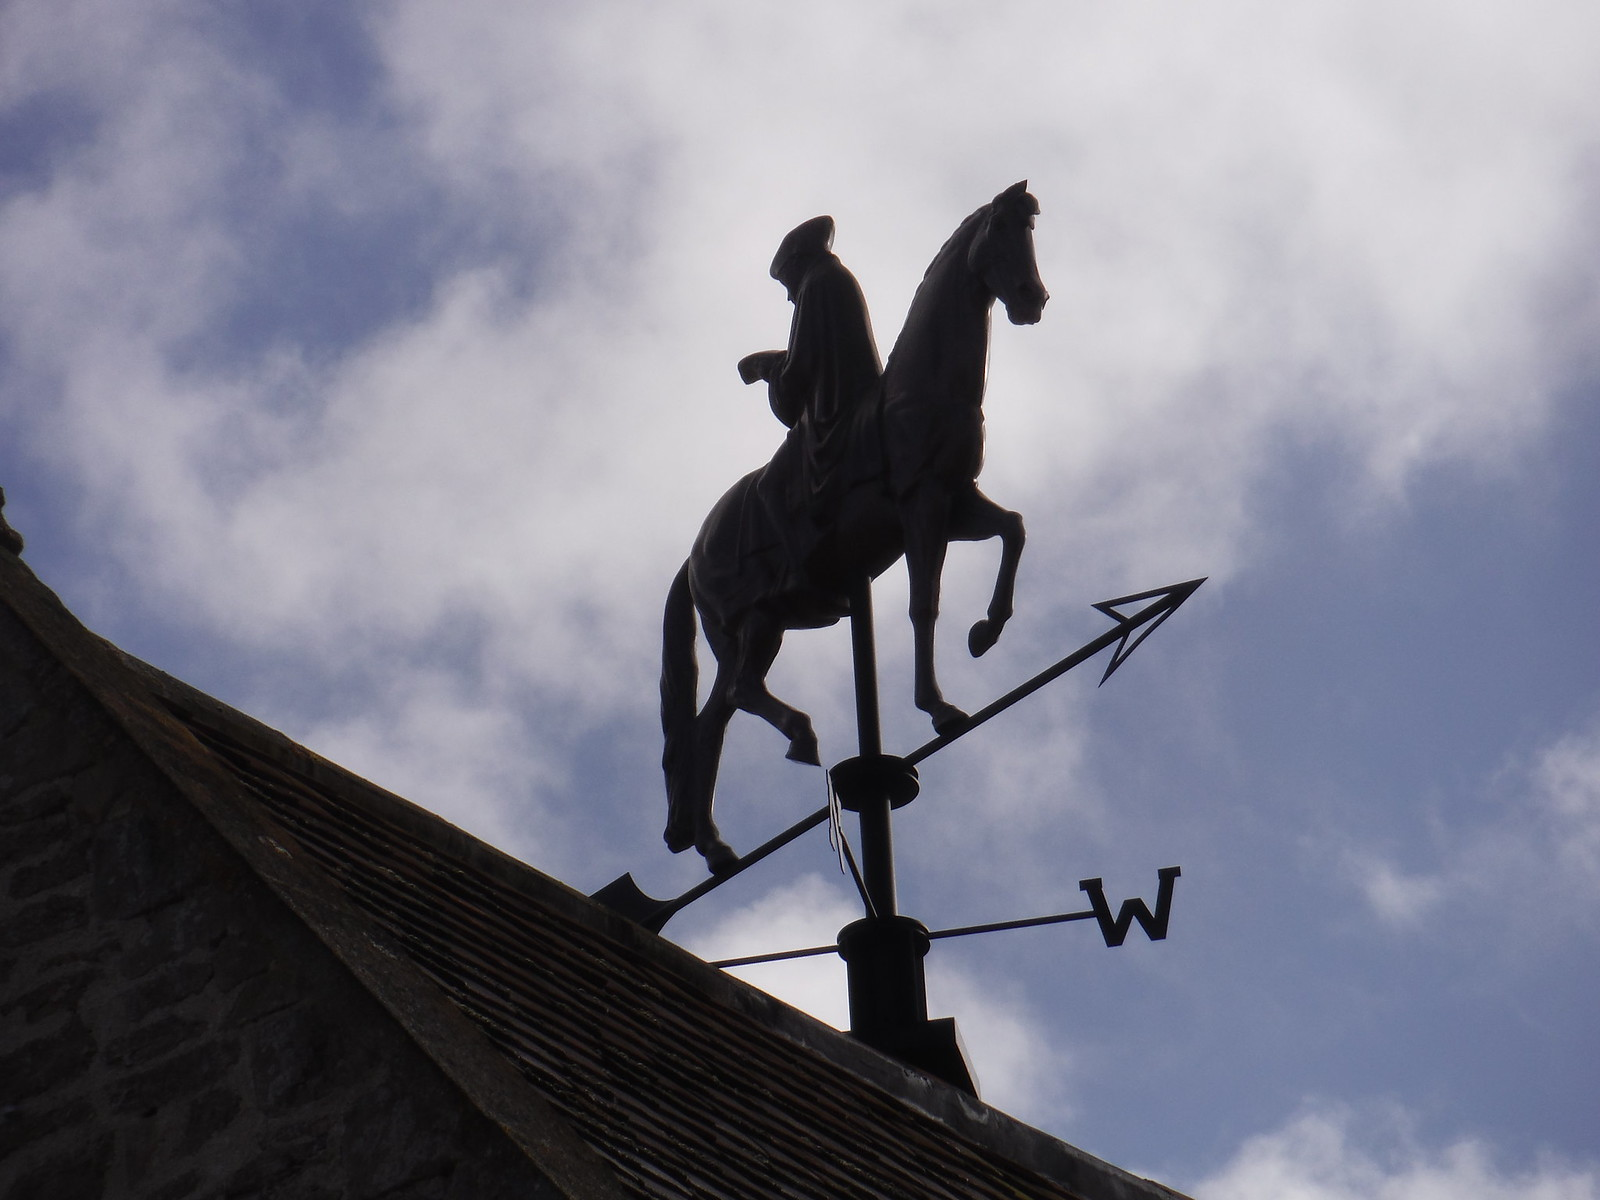 Rodney Graham - Weathervane (2007), Hauser & Wirth Somerset, Durslade Farm, Bruton SWC Walk 284 Bruton Circular (via Hauser & Wirth Somerset) or from Castle Cary